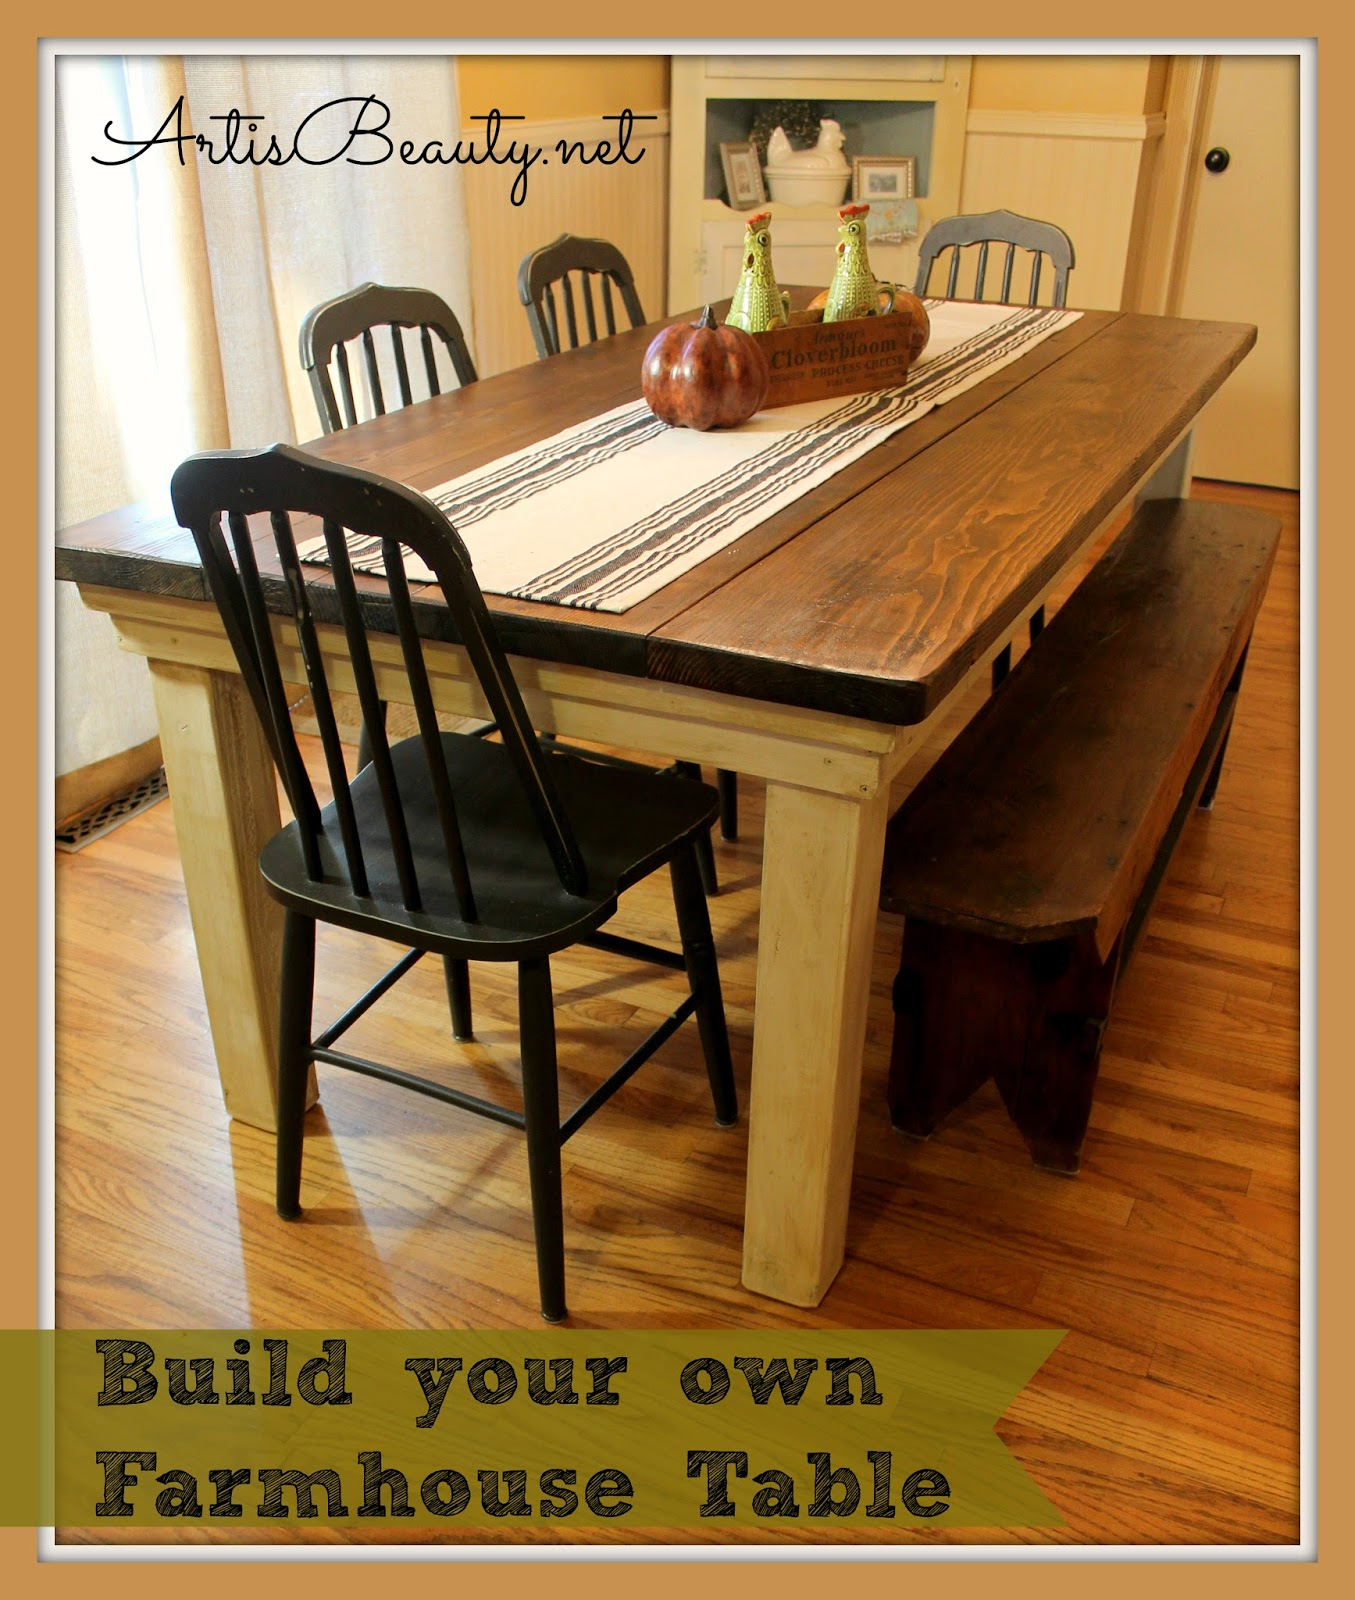 Art is beauty how to build your own farmhouse table for for Building a farmhouse